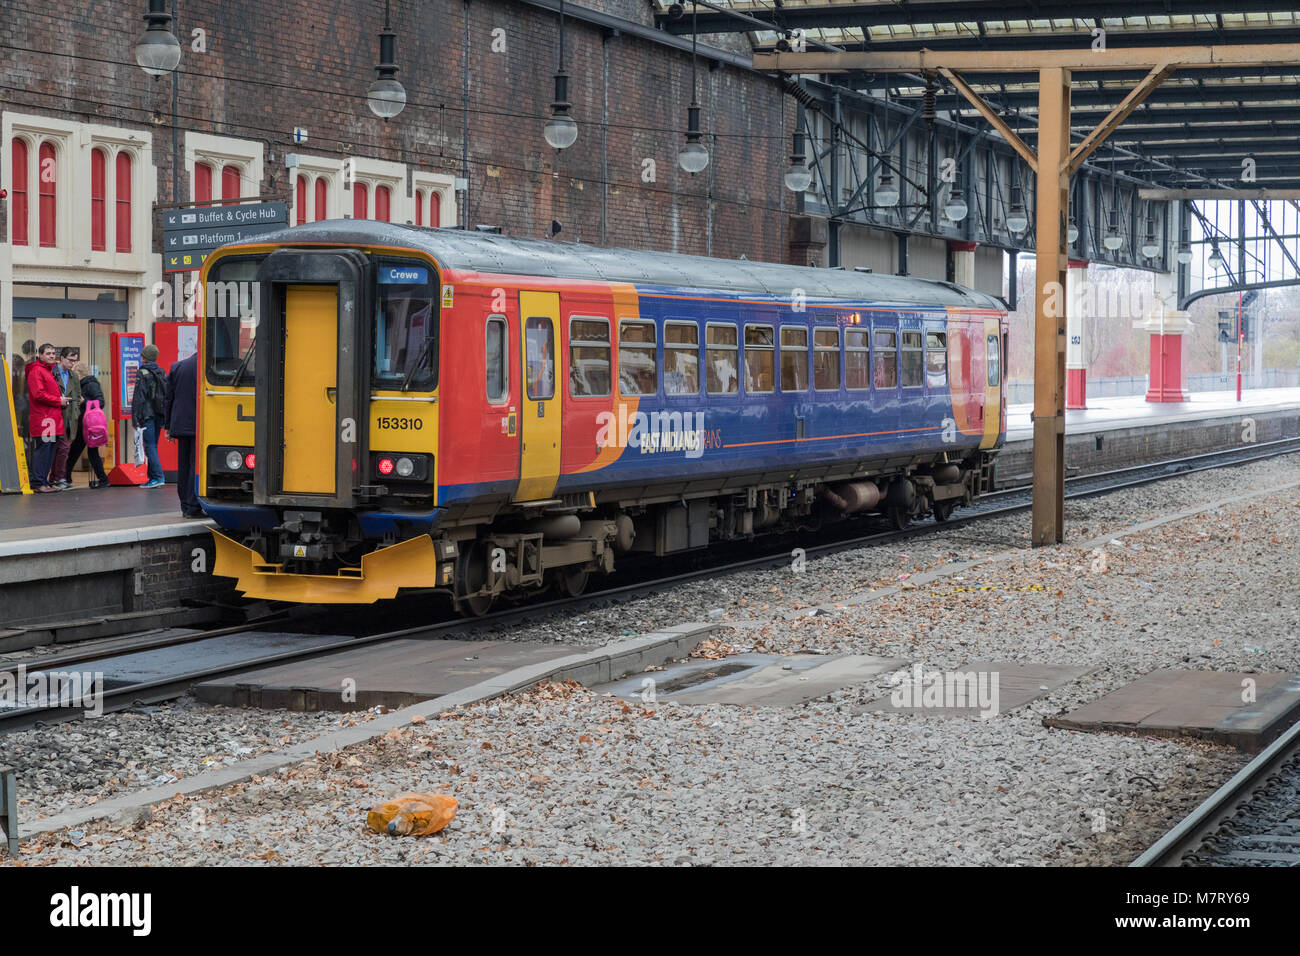 An East Midlands Trains Class 153 diesel train at Stoke On Trent station running  a service to Crewe - Stock Image